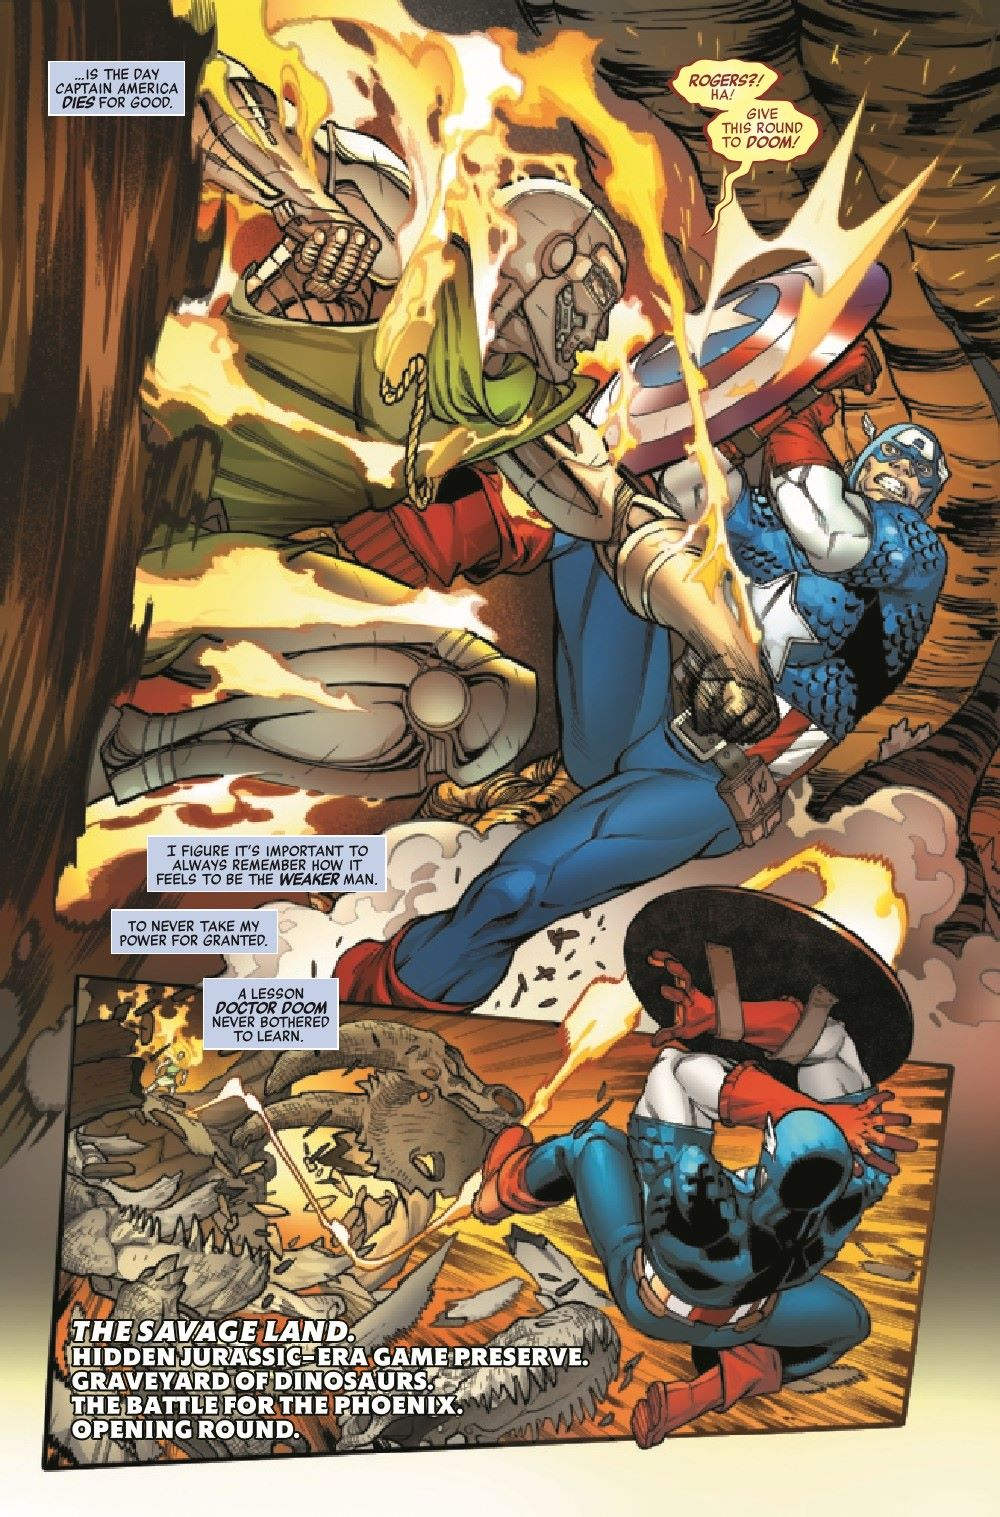 AVEN2018040_Preview-3 ComicList Previews: AVENGERS #40